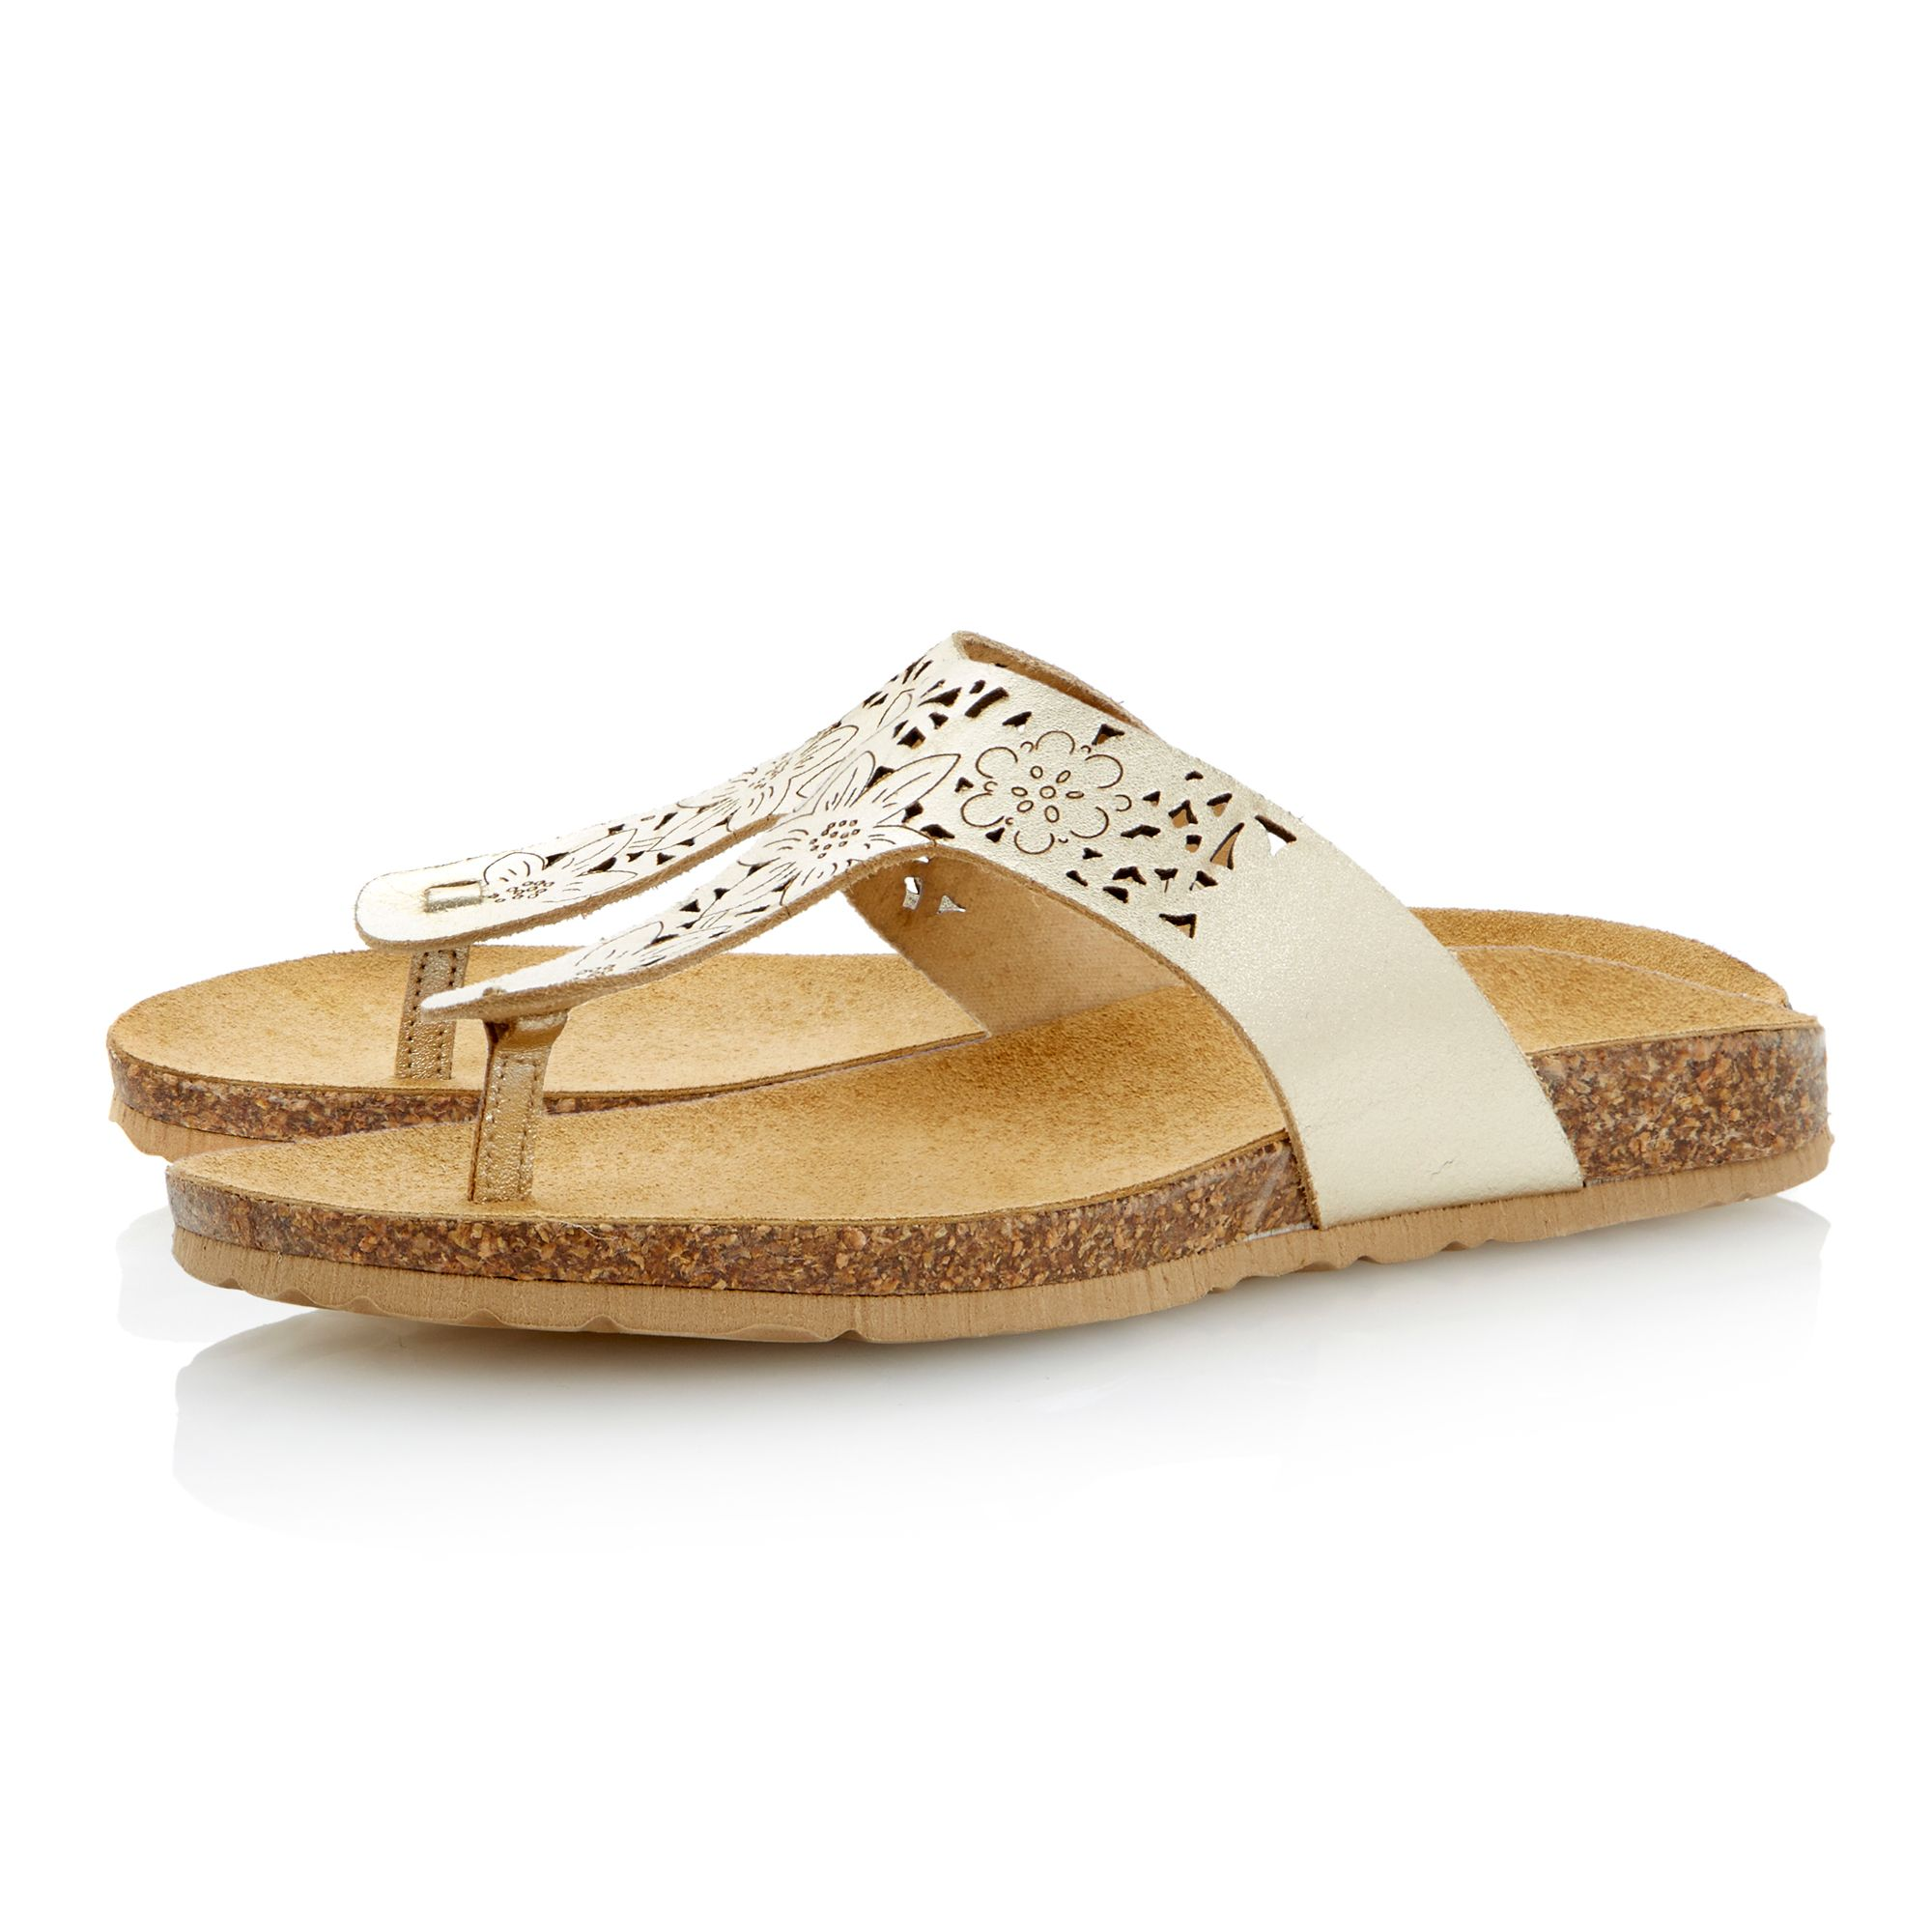 Jexi leather toe post sandals